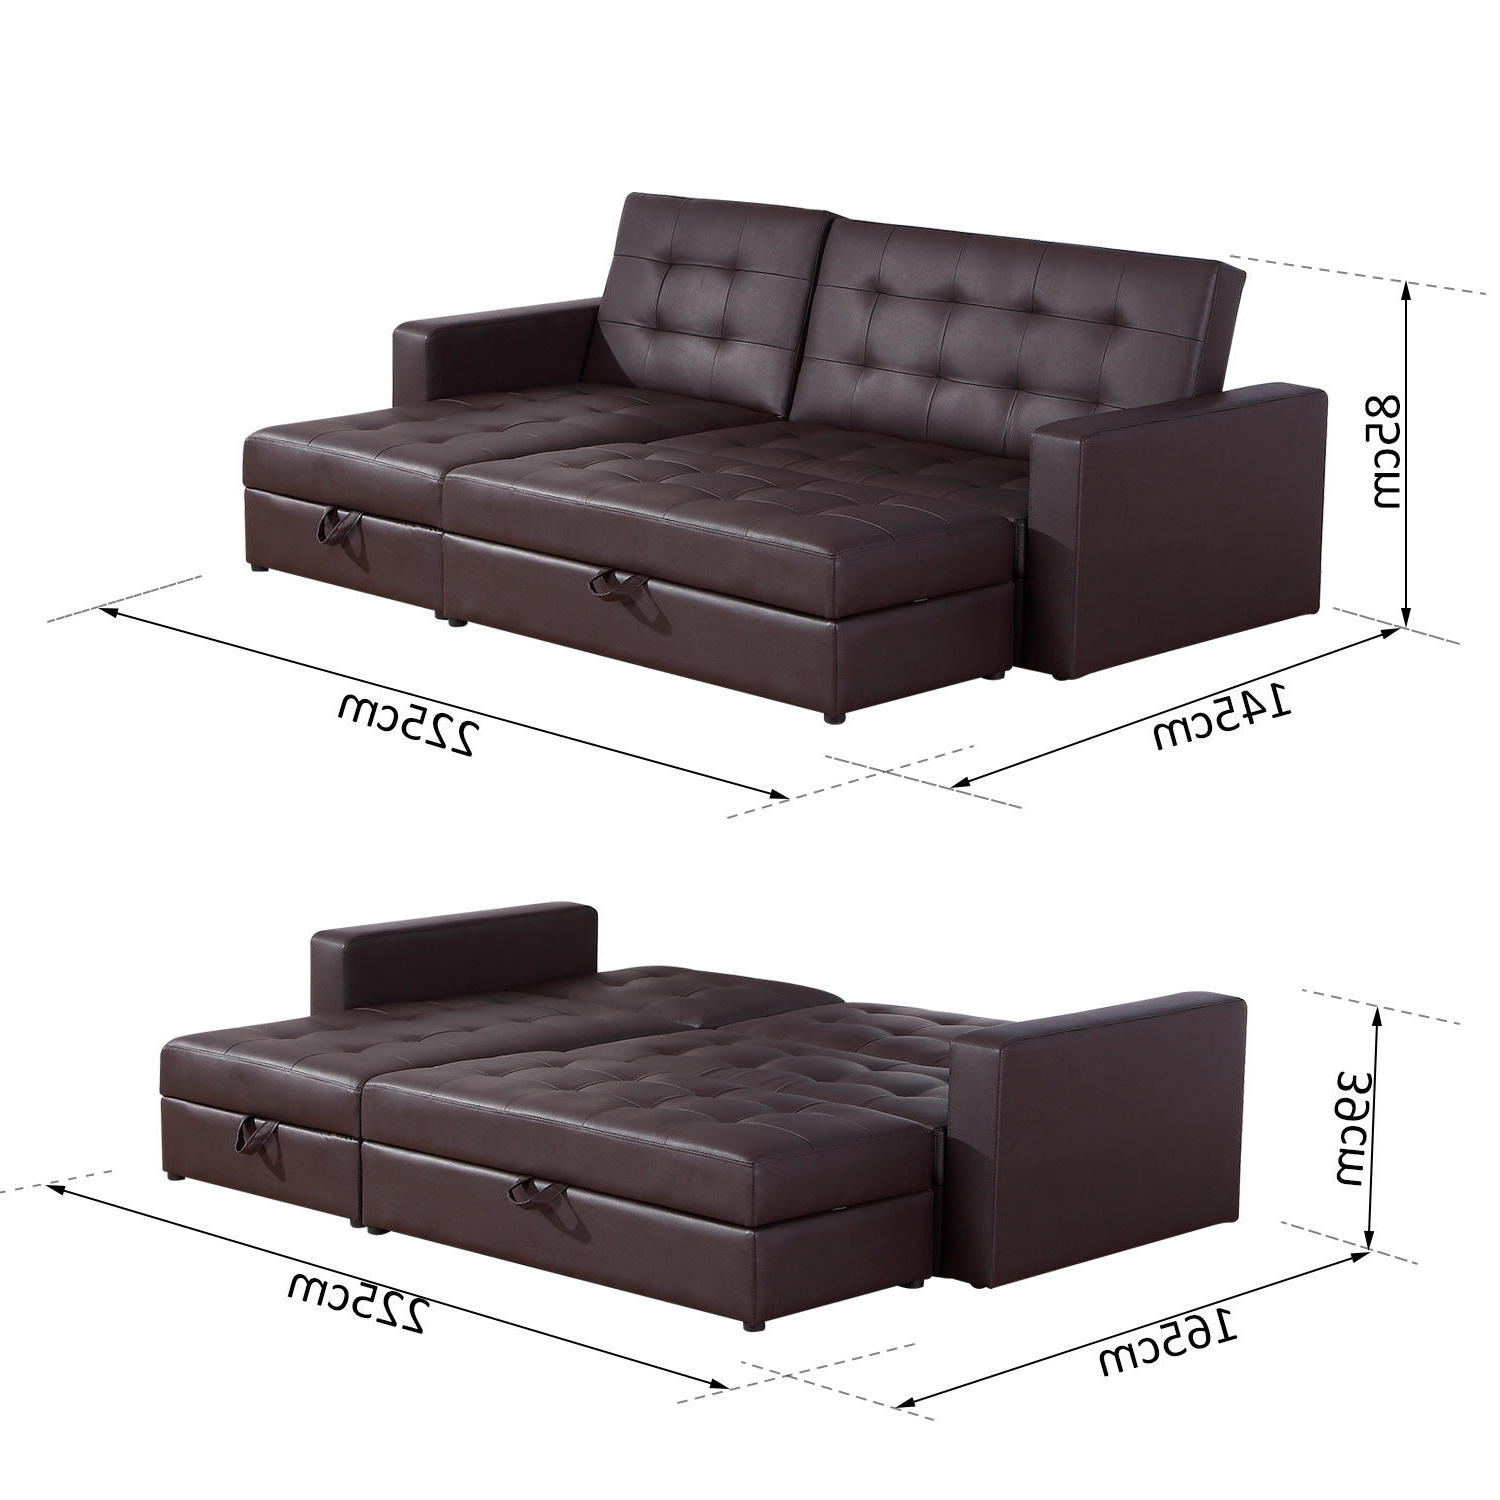 Sofa Bed Storage Sleeper Chaise Loveseat Couch Sectional Intended For Best And Newest Hartford Storage Sectional Futon Sofas (View 20 of 20)